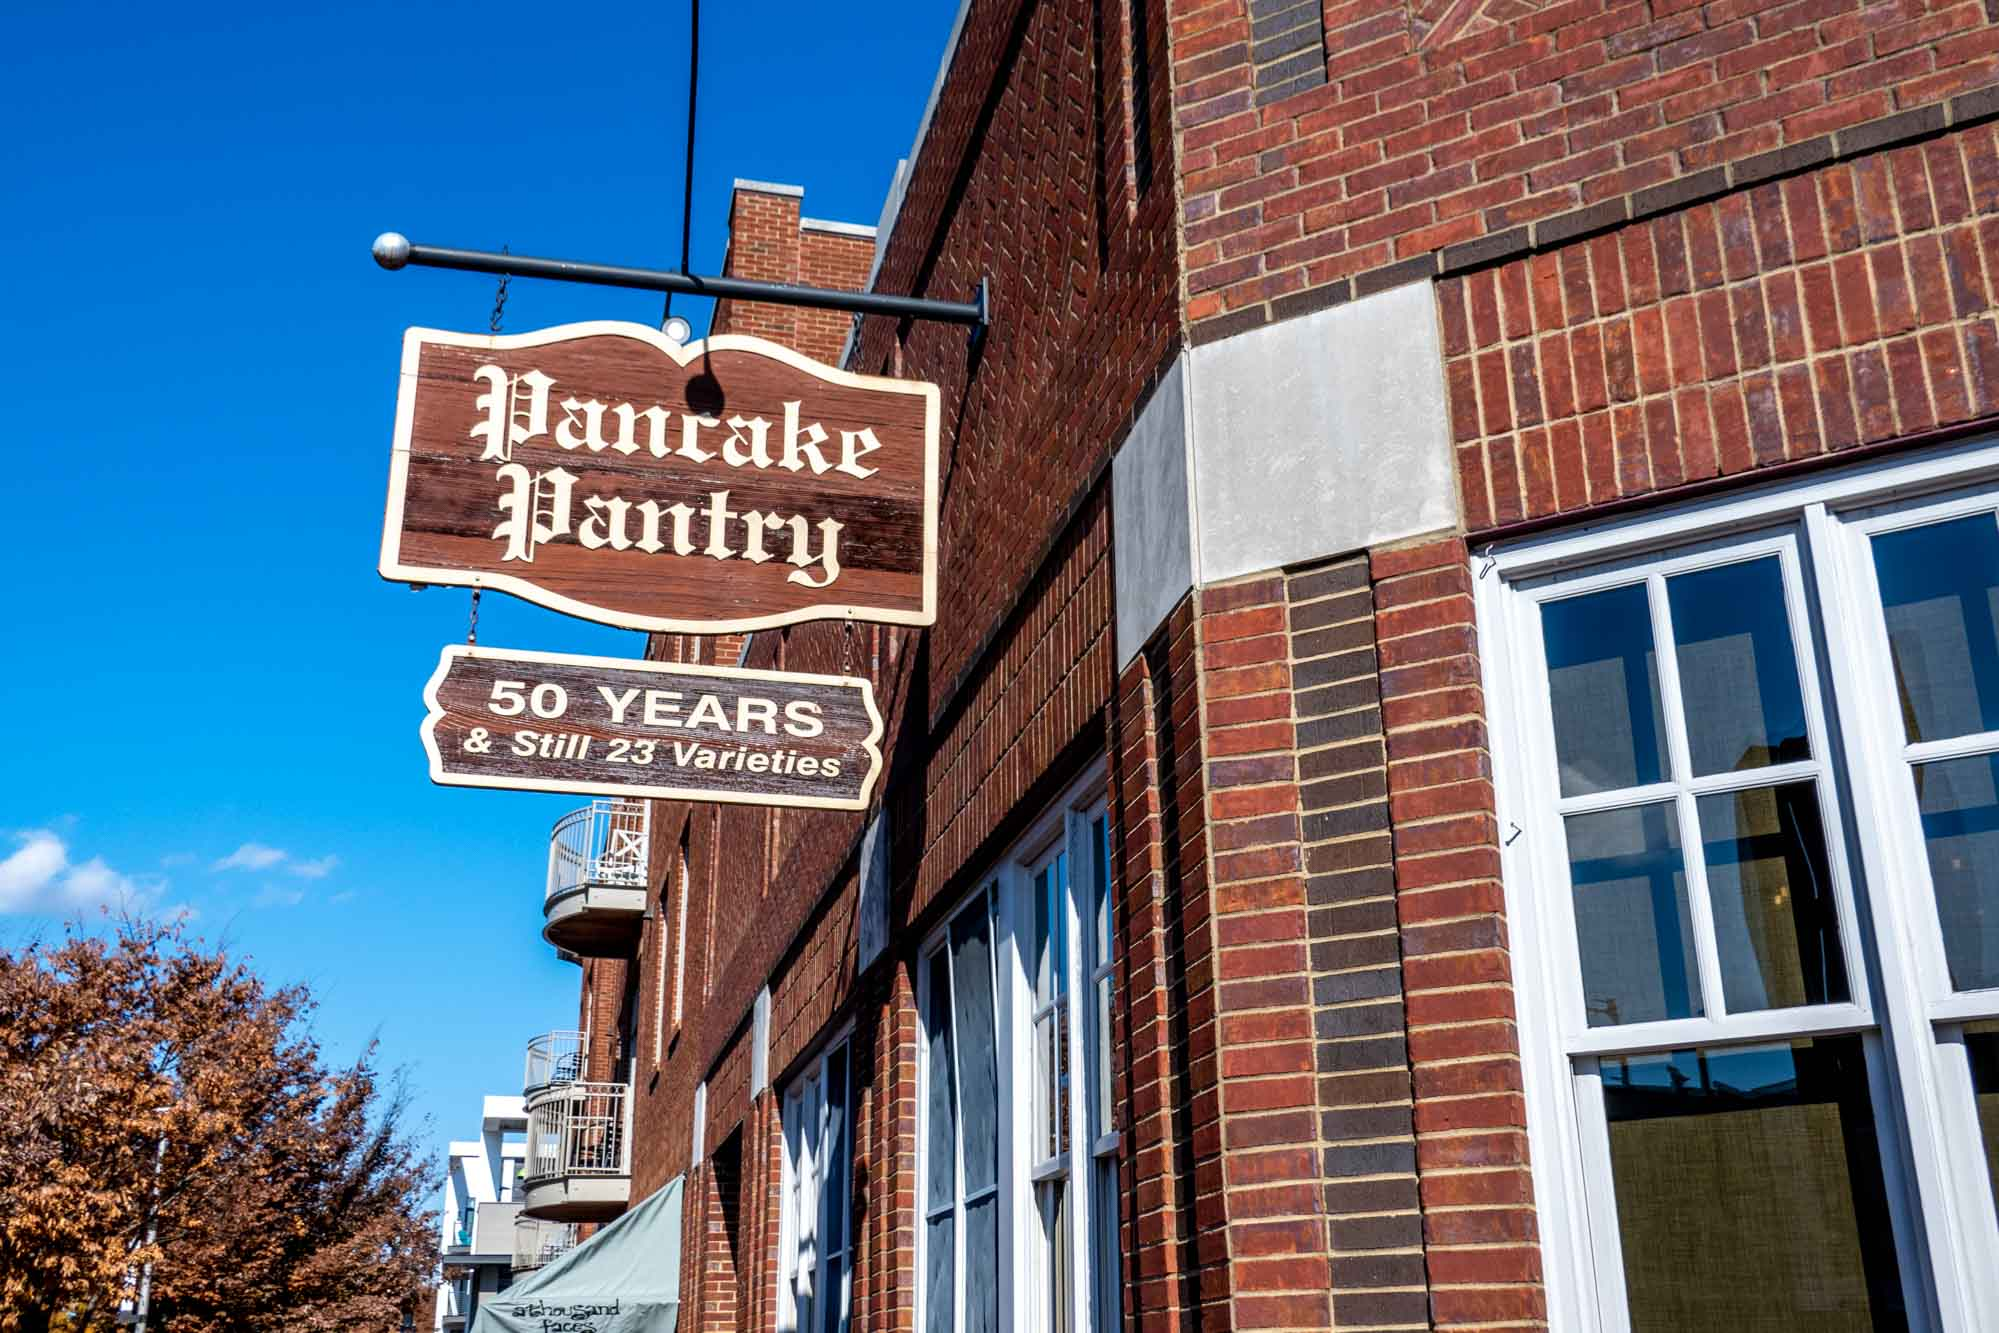 Sign outside a brick building: Pancake Pantry, 50 Years & Still 23 Varieties